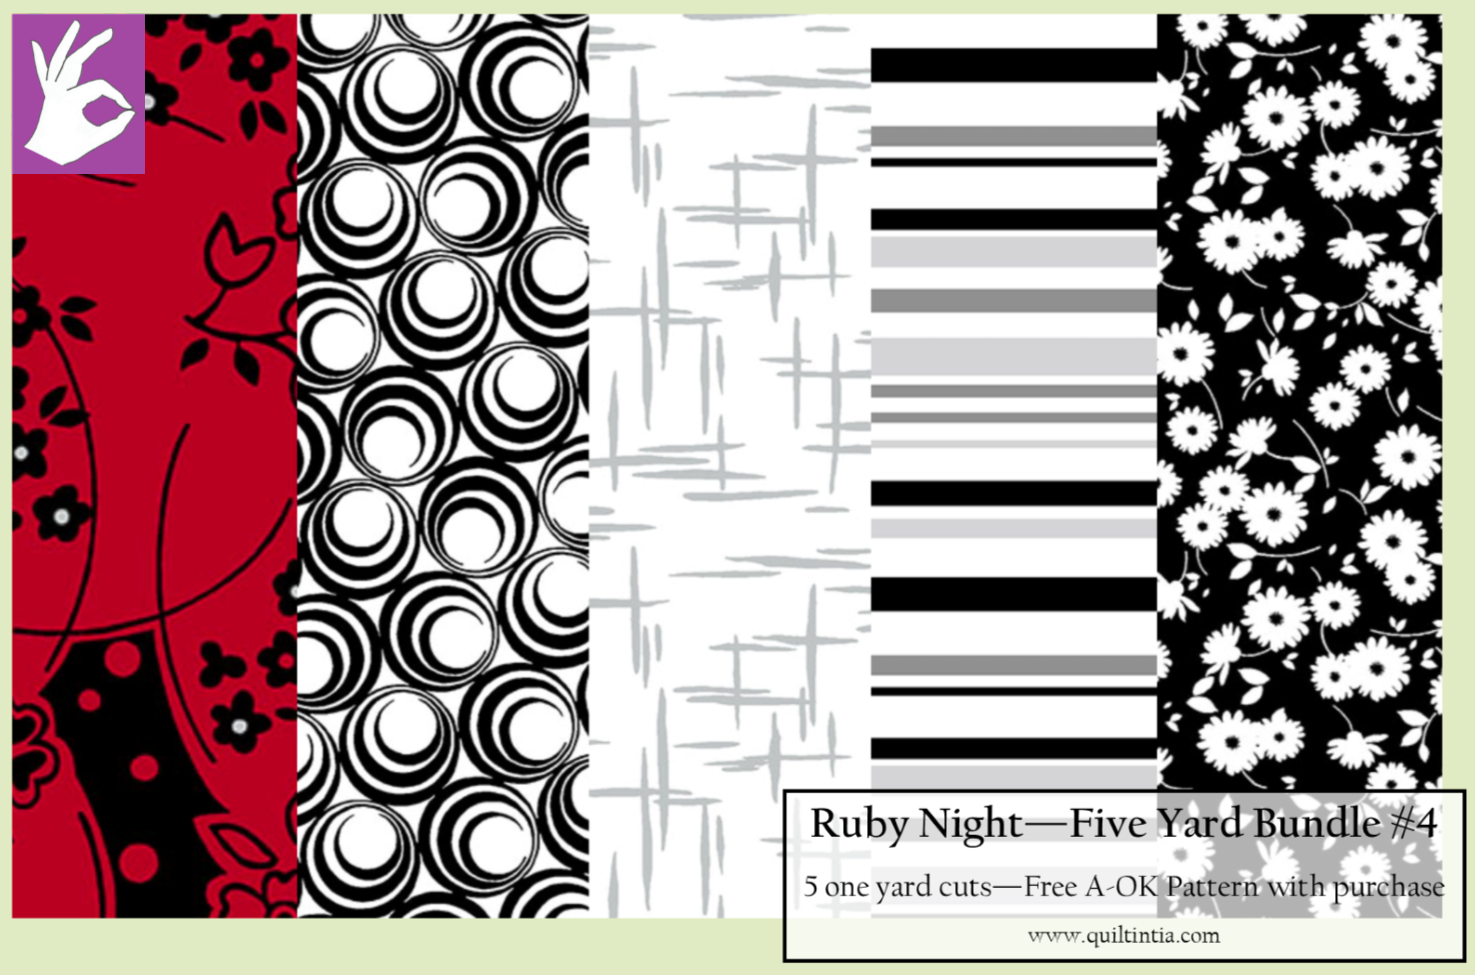 Ruby Night - Five Yard Bundle #4 - Free A-OK Pattern with Purchase